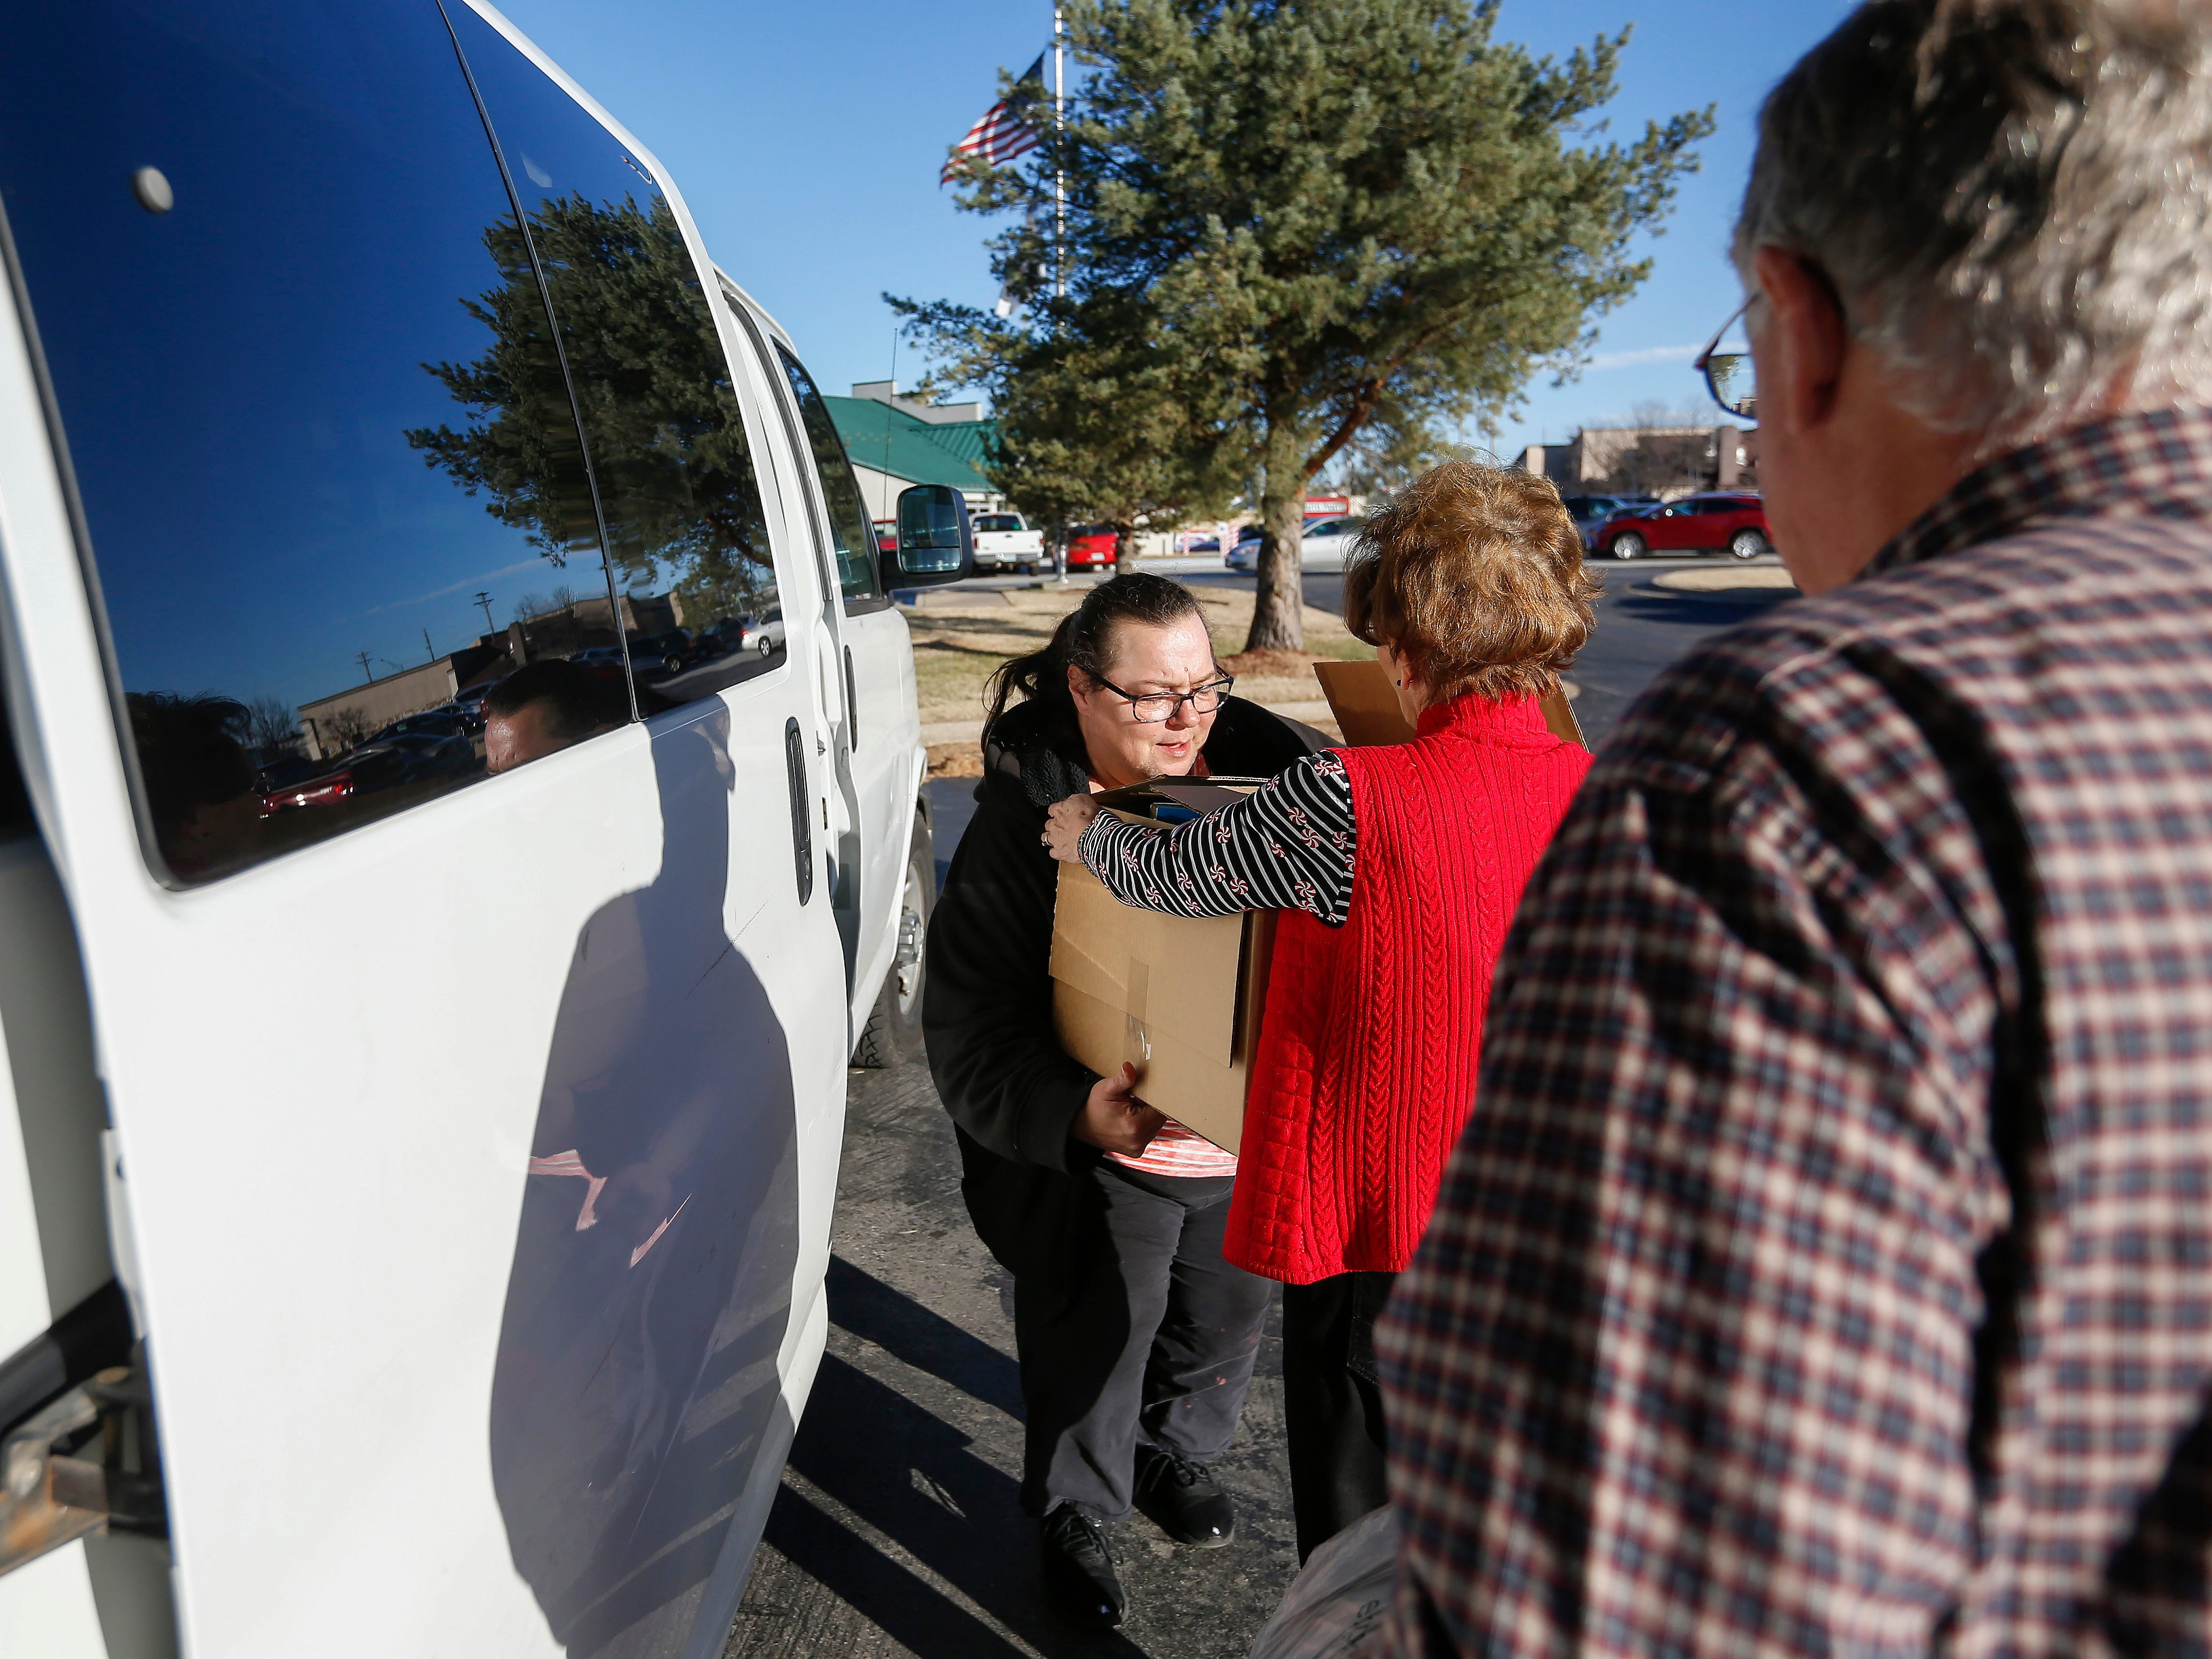 Sheryl Wachter, center, hands a box to  Billie Ridenour as they load gifts into Ridenour's van during the Share Your Christmas distribution at Crosslines on Tuesday, Dec. 18, 2018. Ridenour was receiving gifts for her five grandchildren. Also pictured is Ron Wachter.